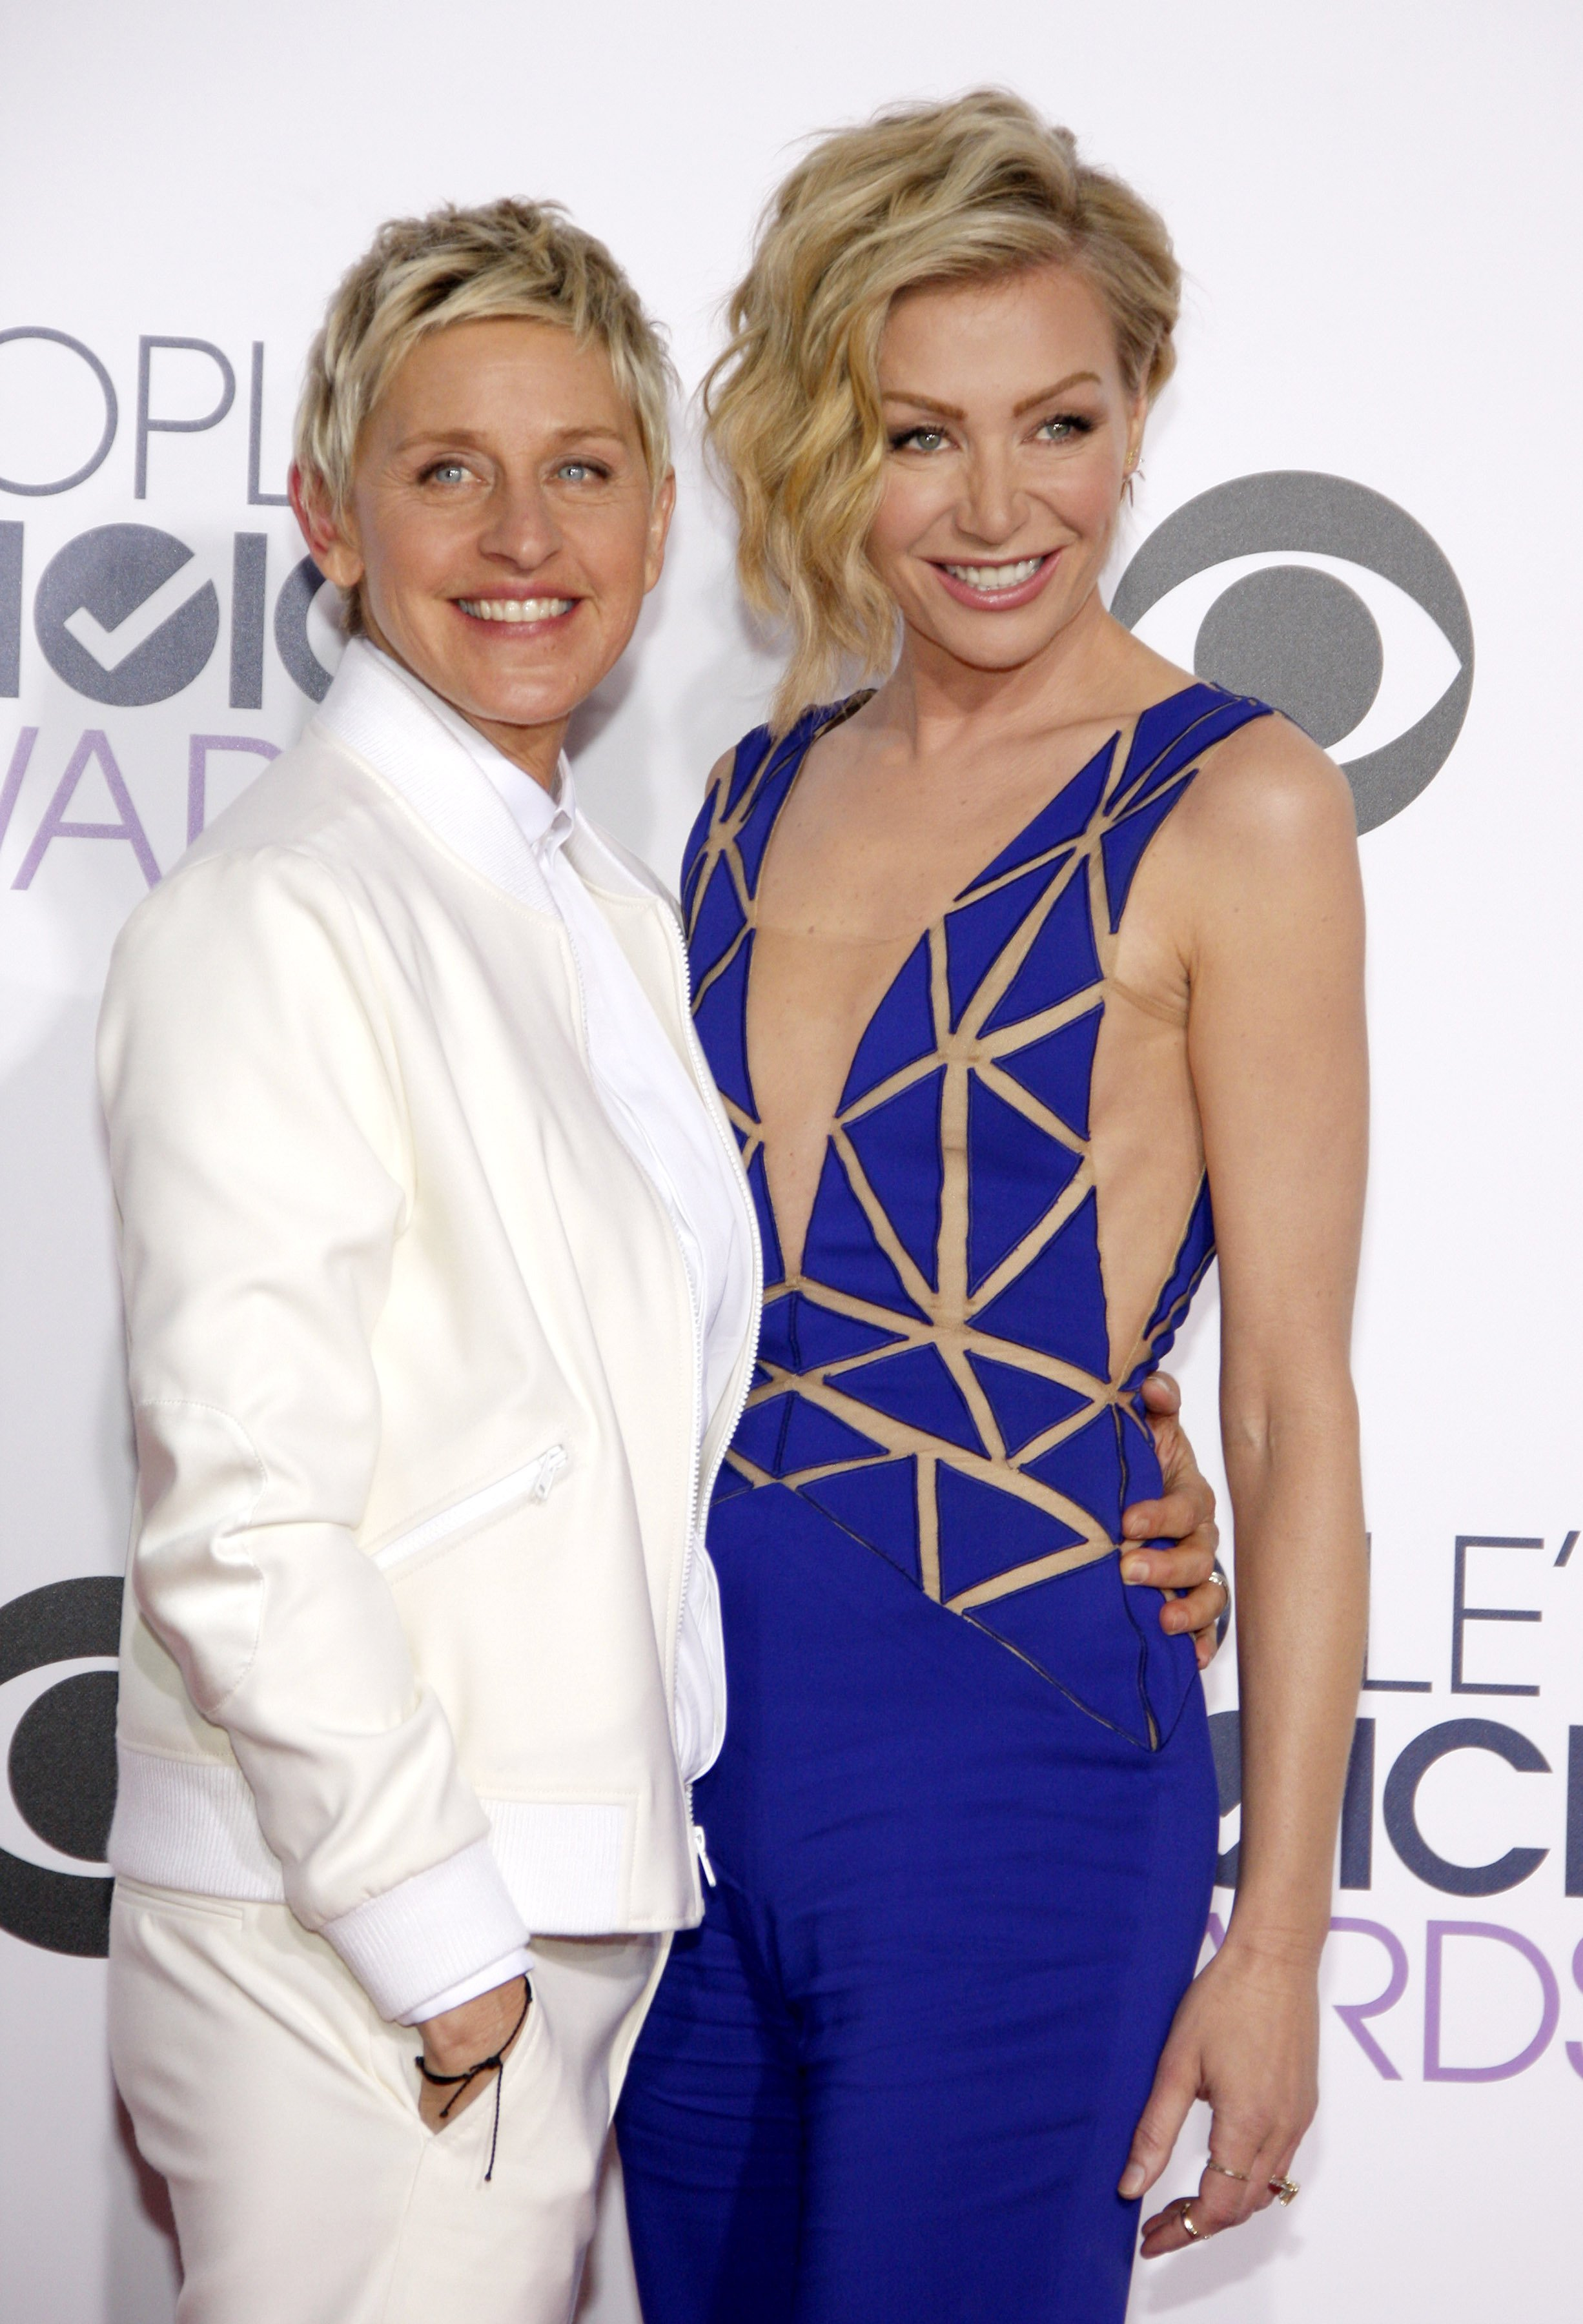 Ellen DeGeneres and Portia de Rossi at the 41st Annual People's Choice Awards at the Nokia L.A. Live Theatre in Los Angeles on January 7, 2015 | Photo: Shutterstock